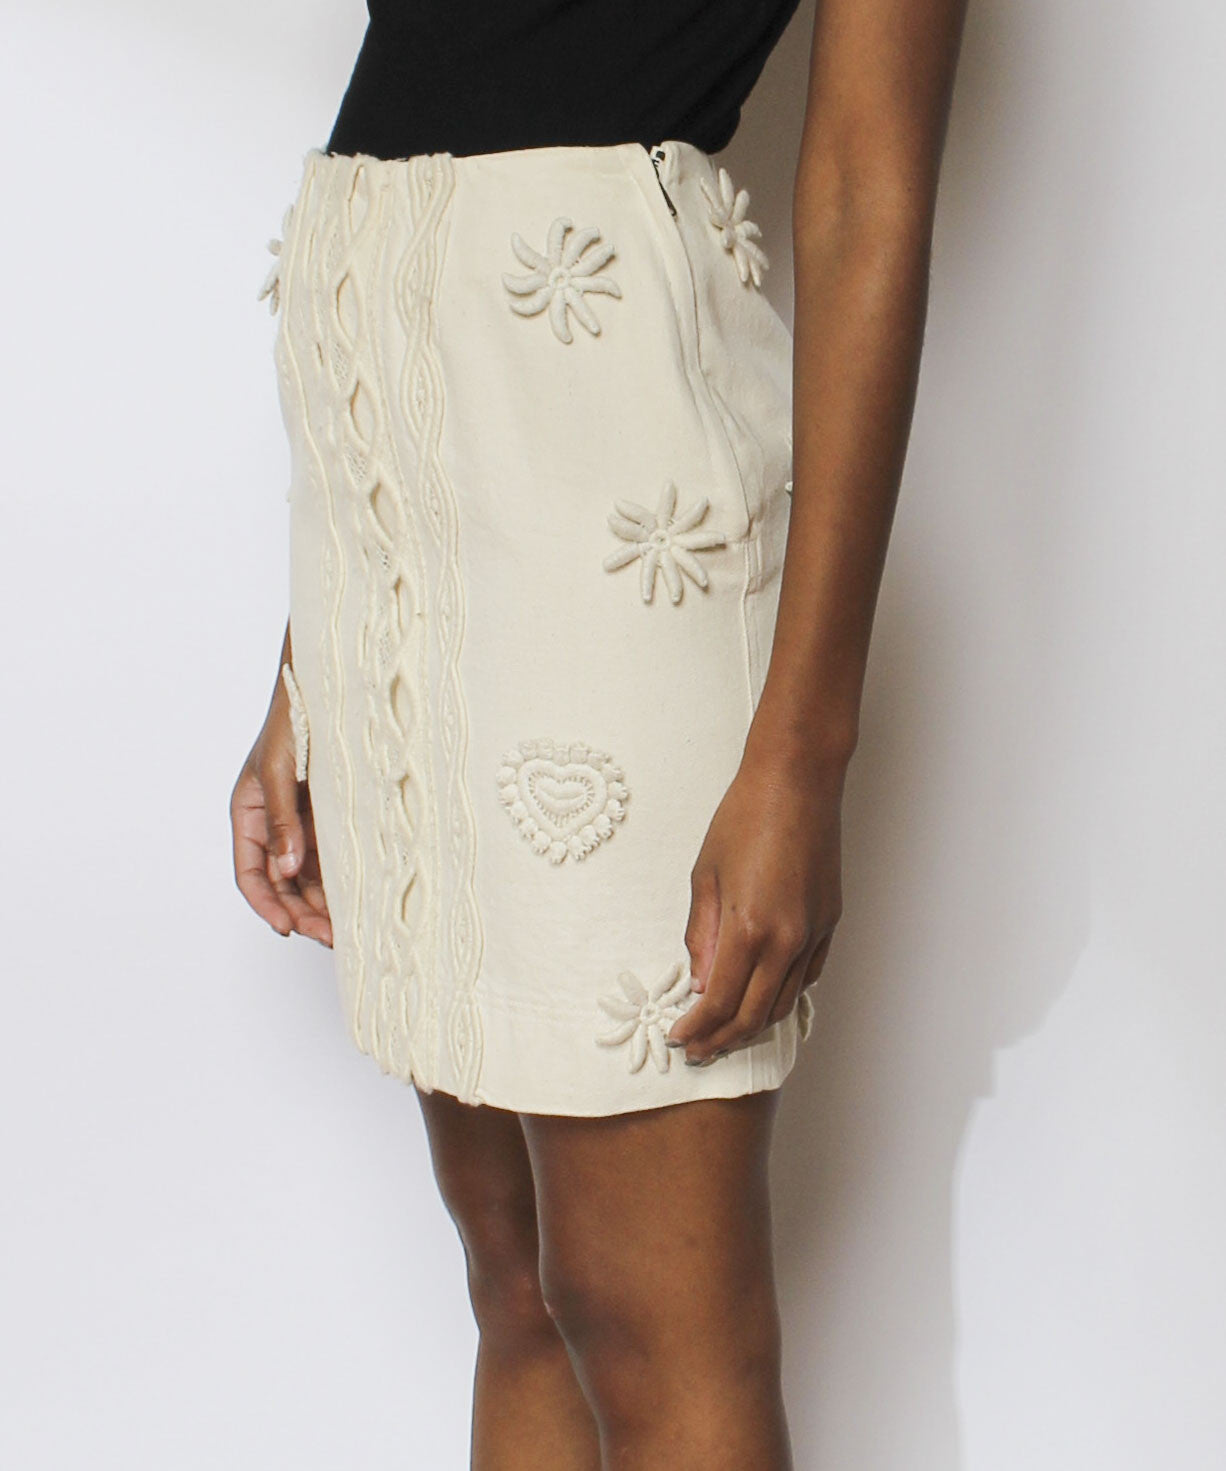 Alberta Ferretti Jeans Cream Denim Pencil Skirt with Knit Appliqués - C.Madeleine's